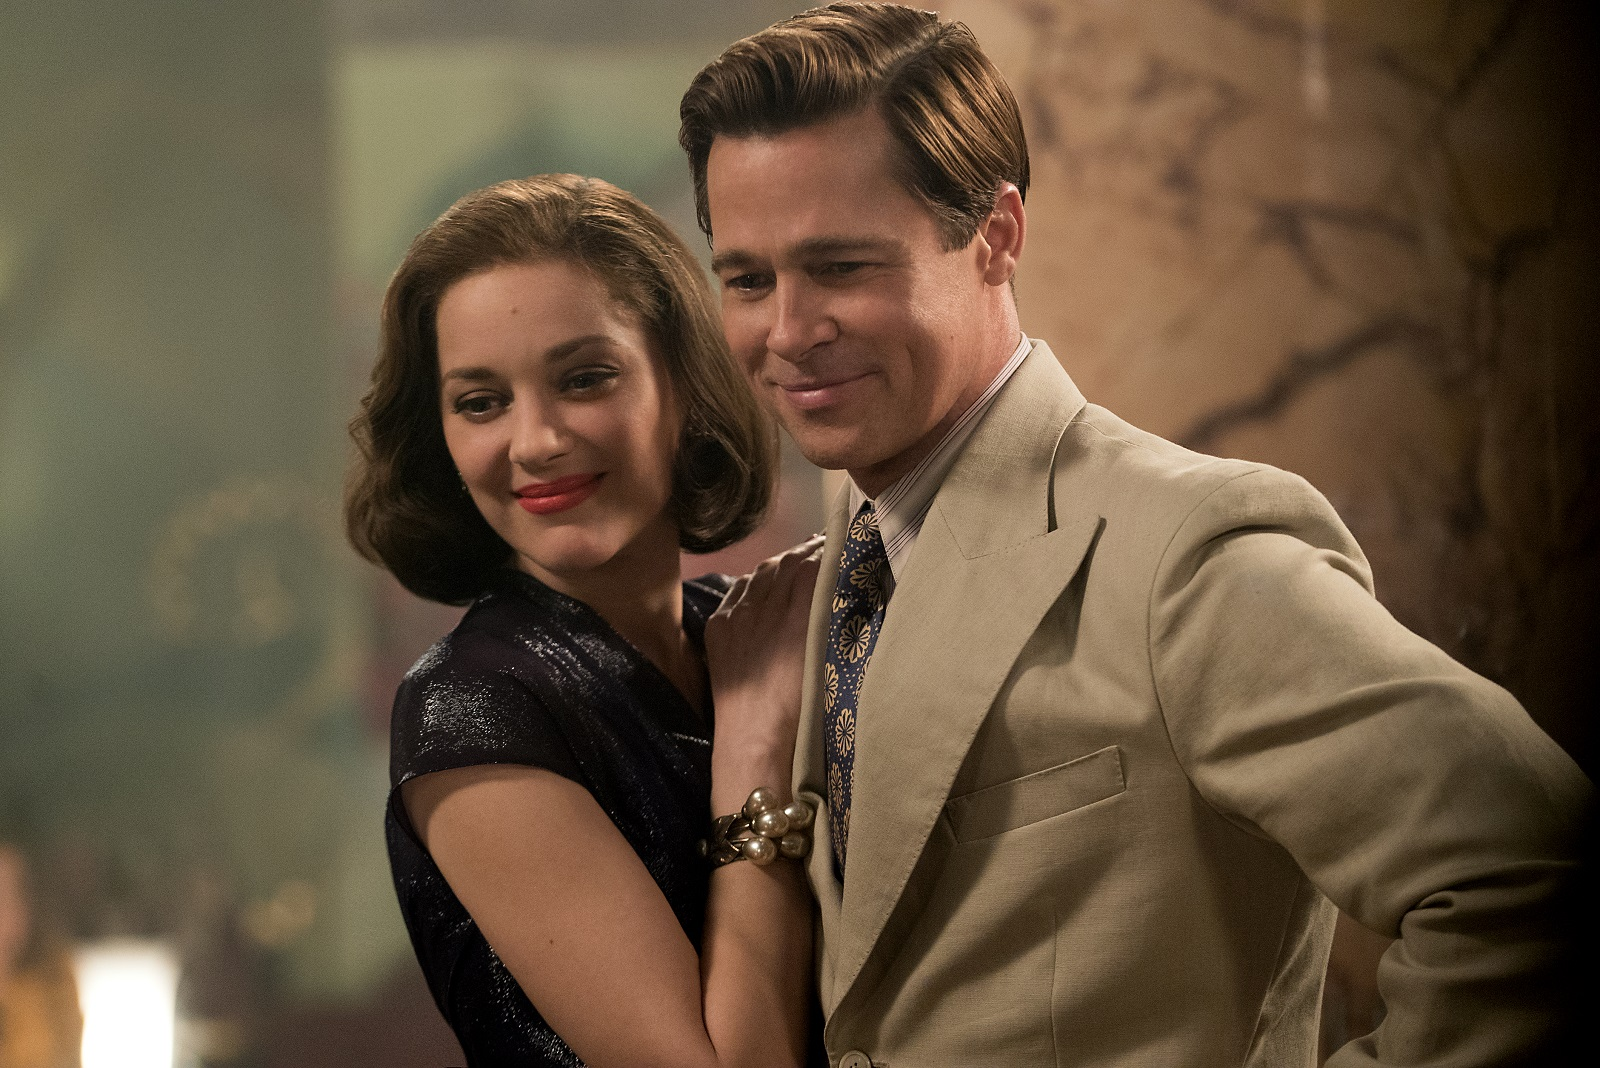 Marion Cotillard and Brad Pitt have a wartime romance in 'Allied.'